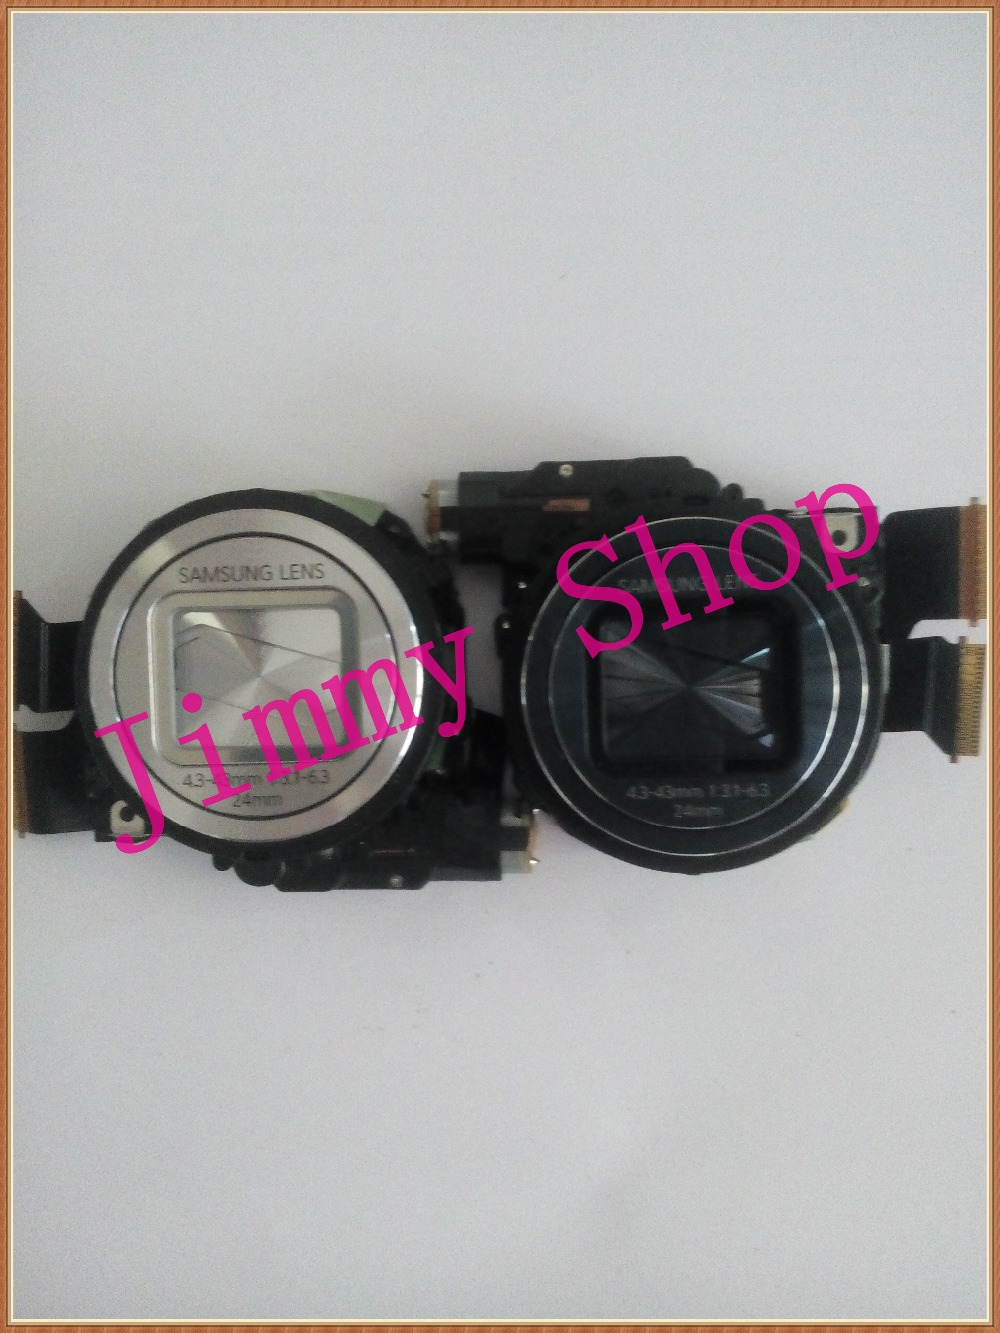 Digital Camera Replacement Parts new original lens CCD for Samsung GALAXY S4 Zoom SM-C101 SM-C1010 C1010 C101 Remarks color